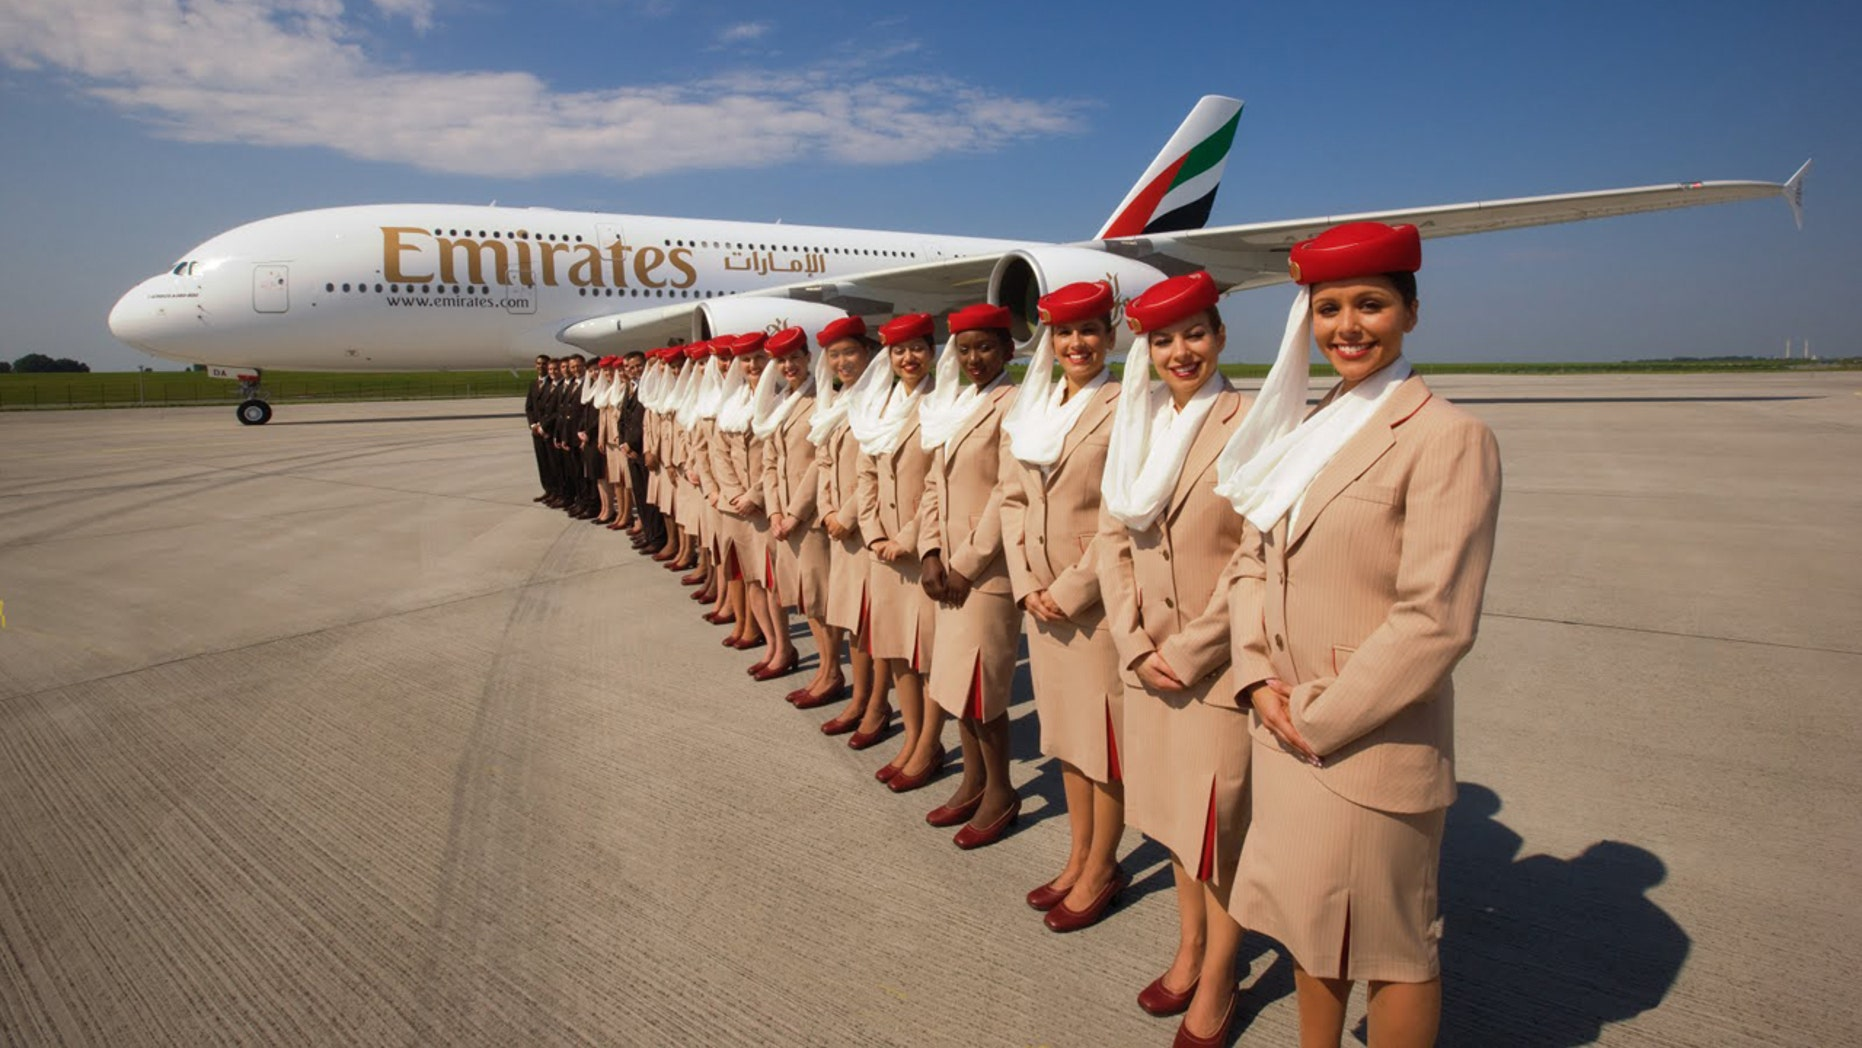 Emirates, based in Dubai, United Arab Emirates has been named the world's top airline.